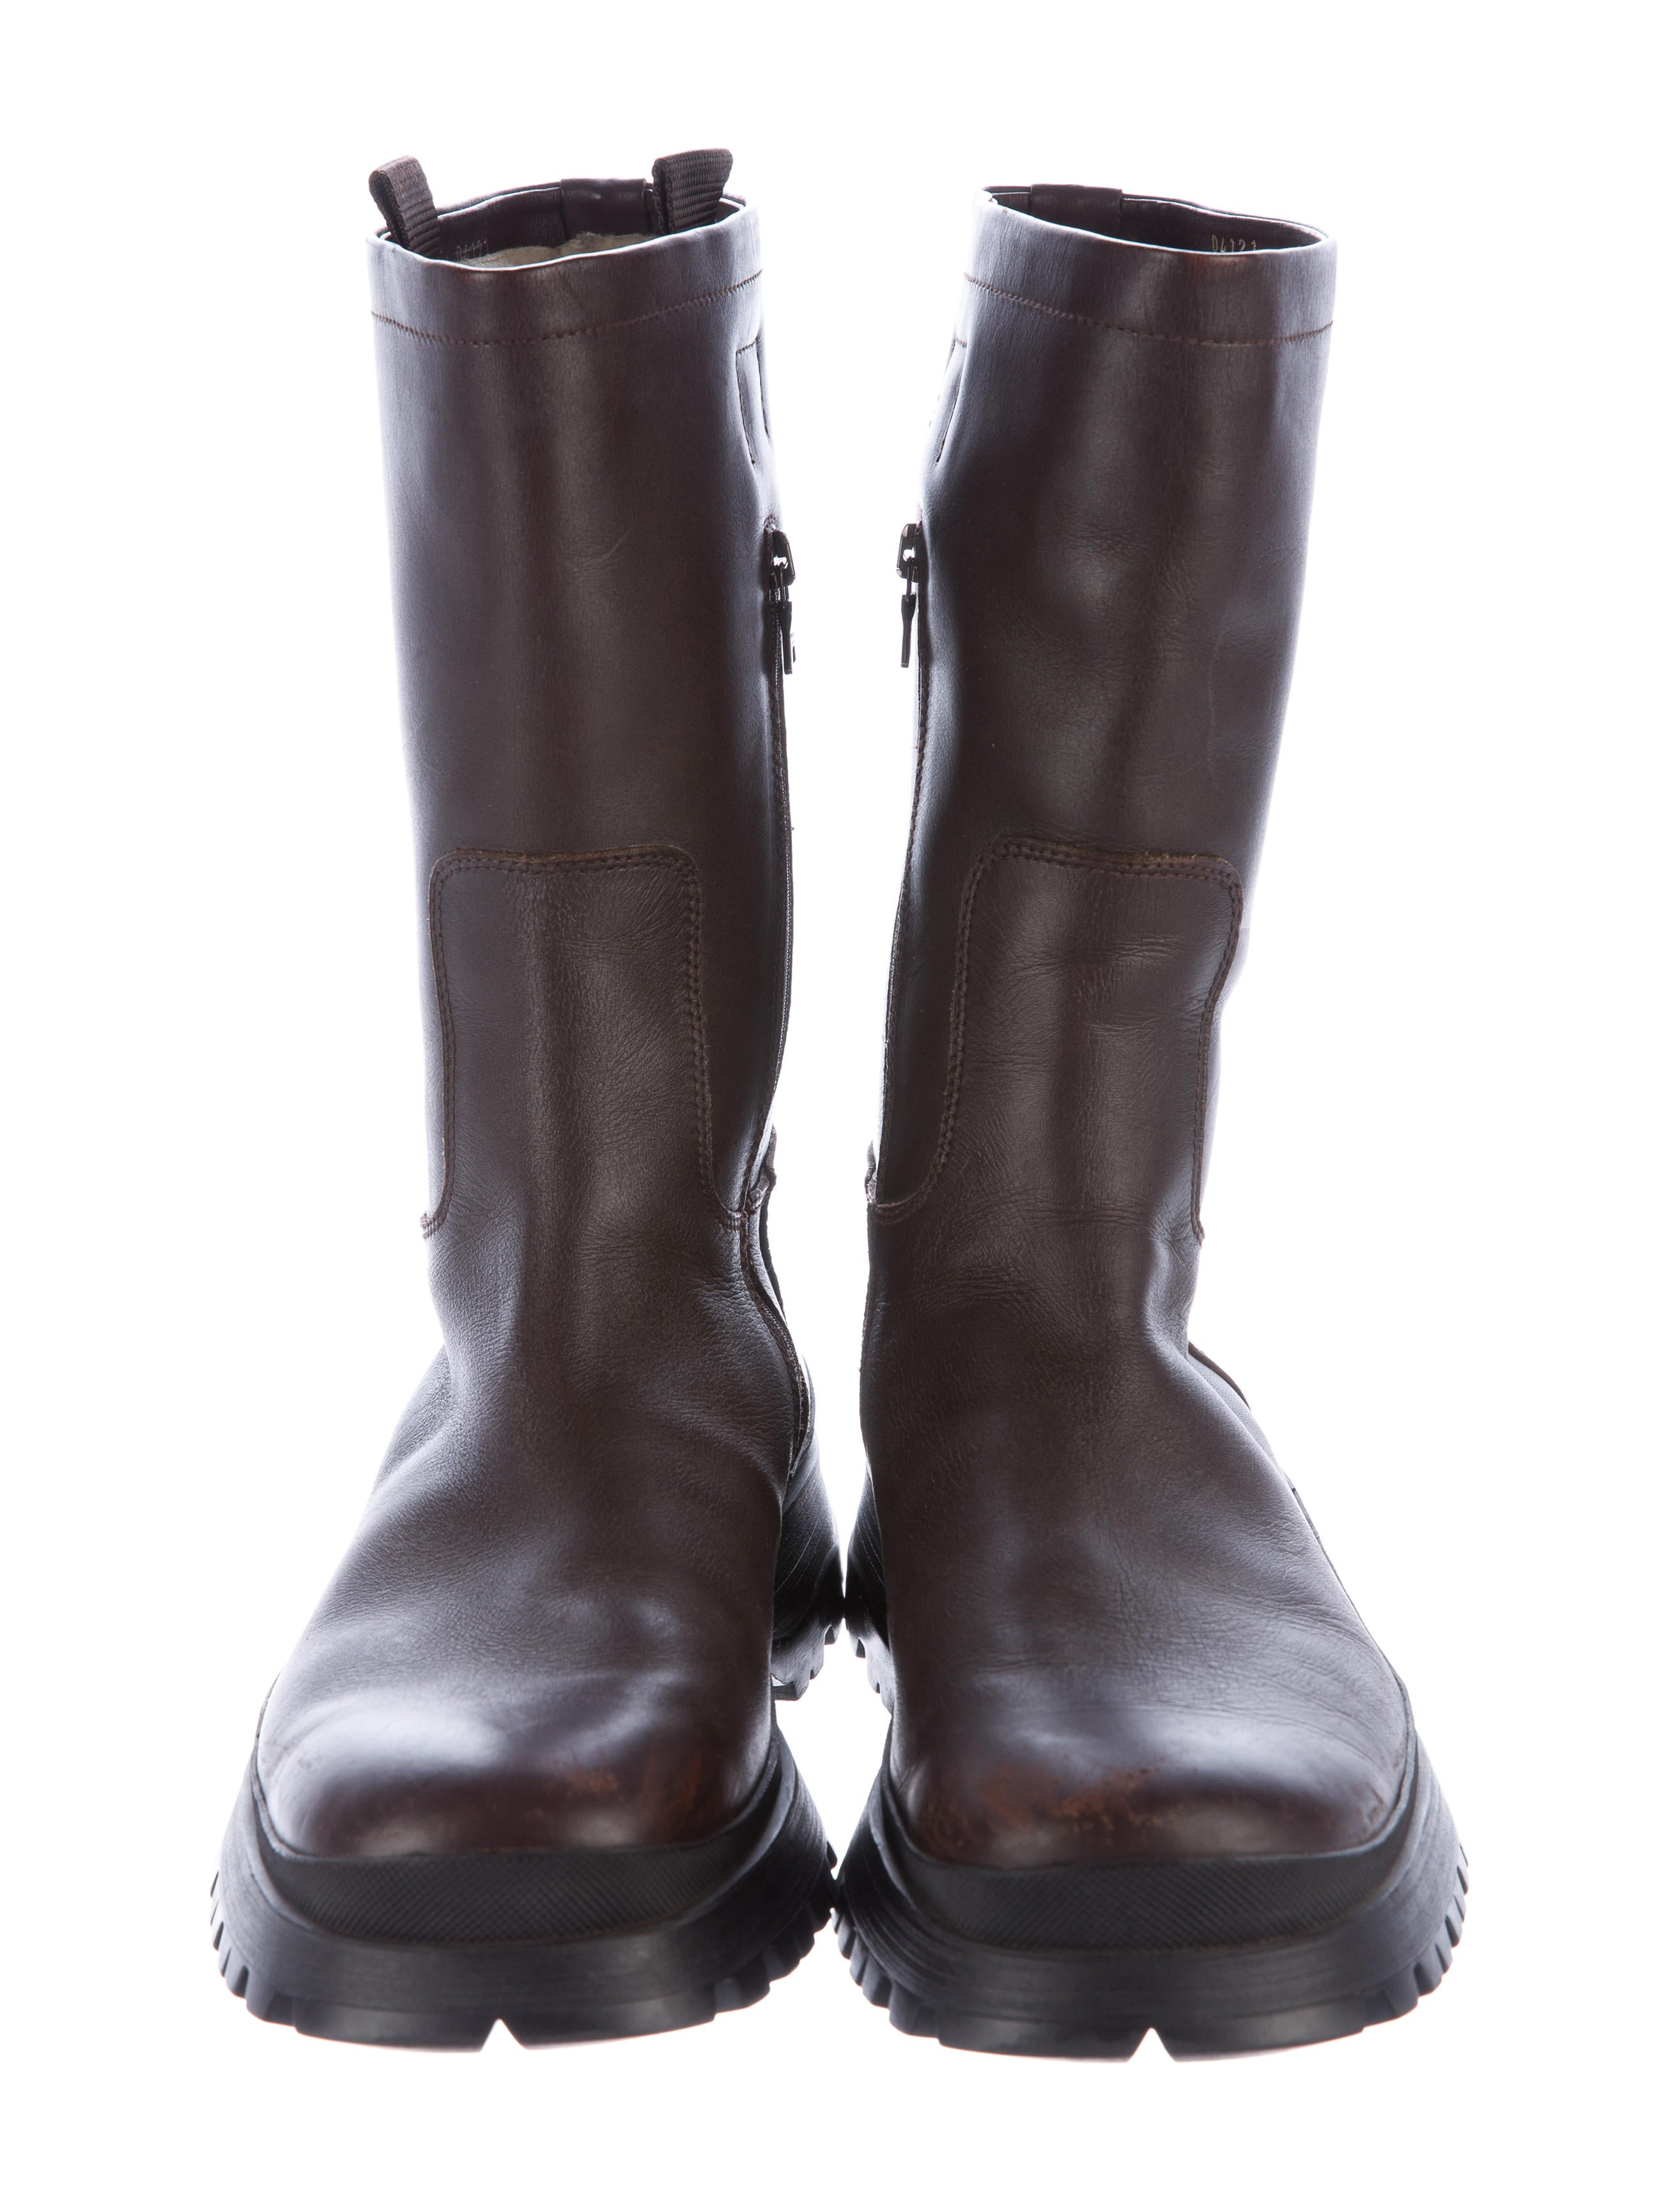 Contemporary Flatware Prada Sport Shearling Lined Leather Boots Shoes